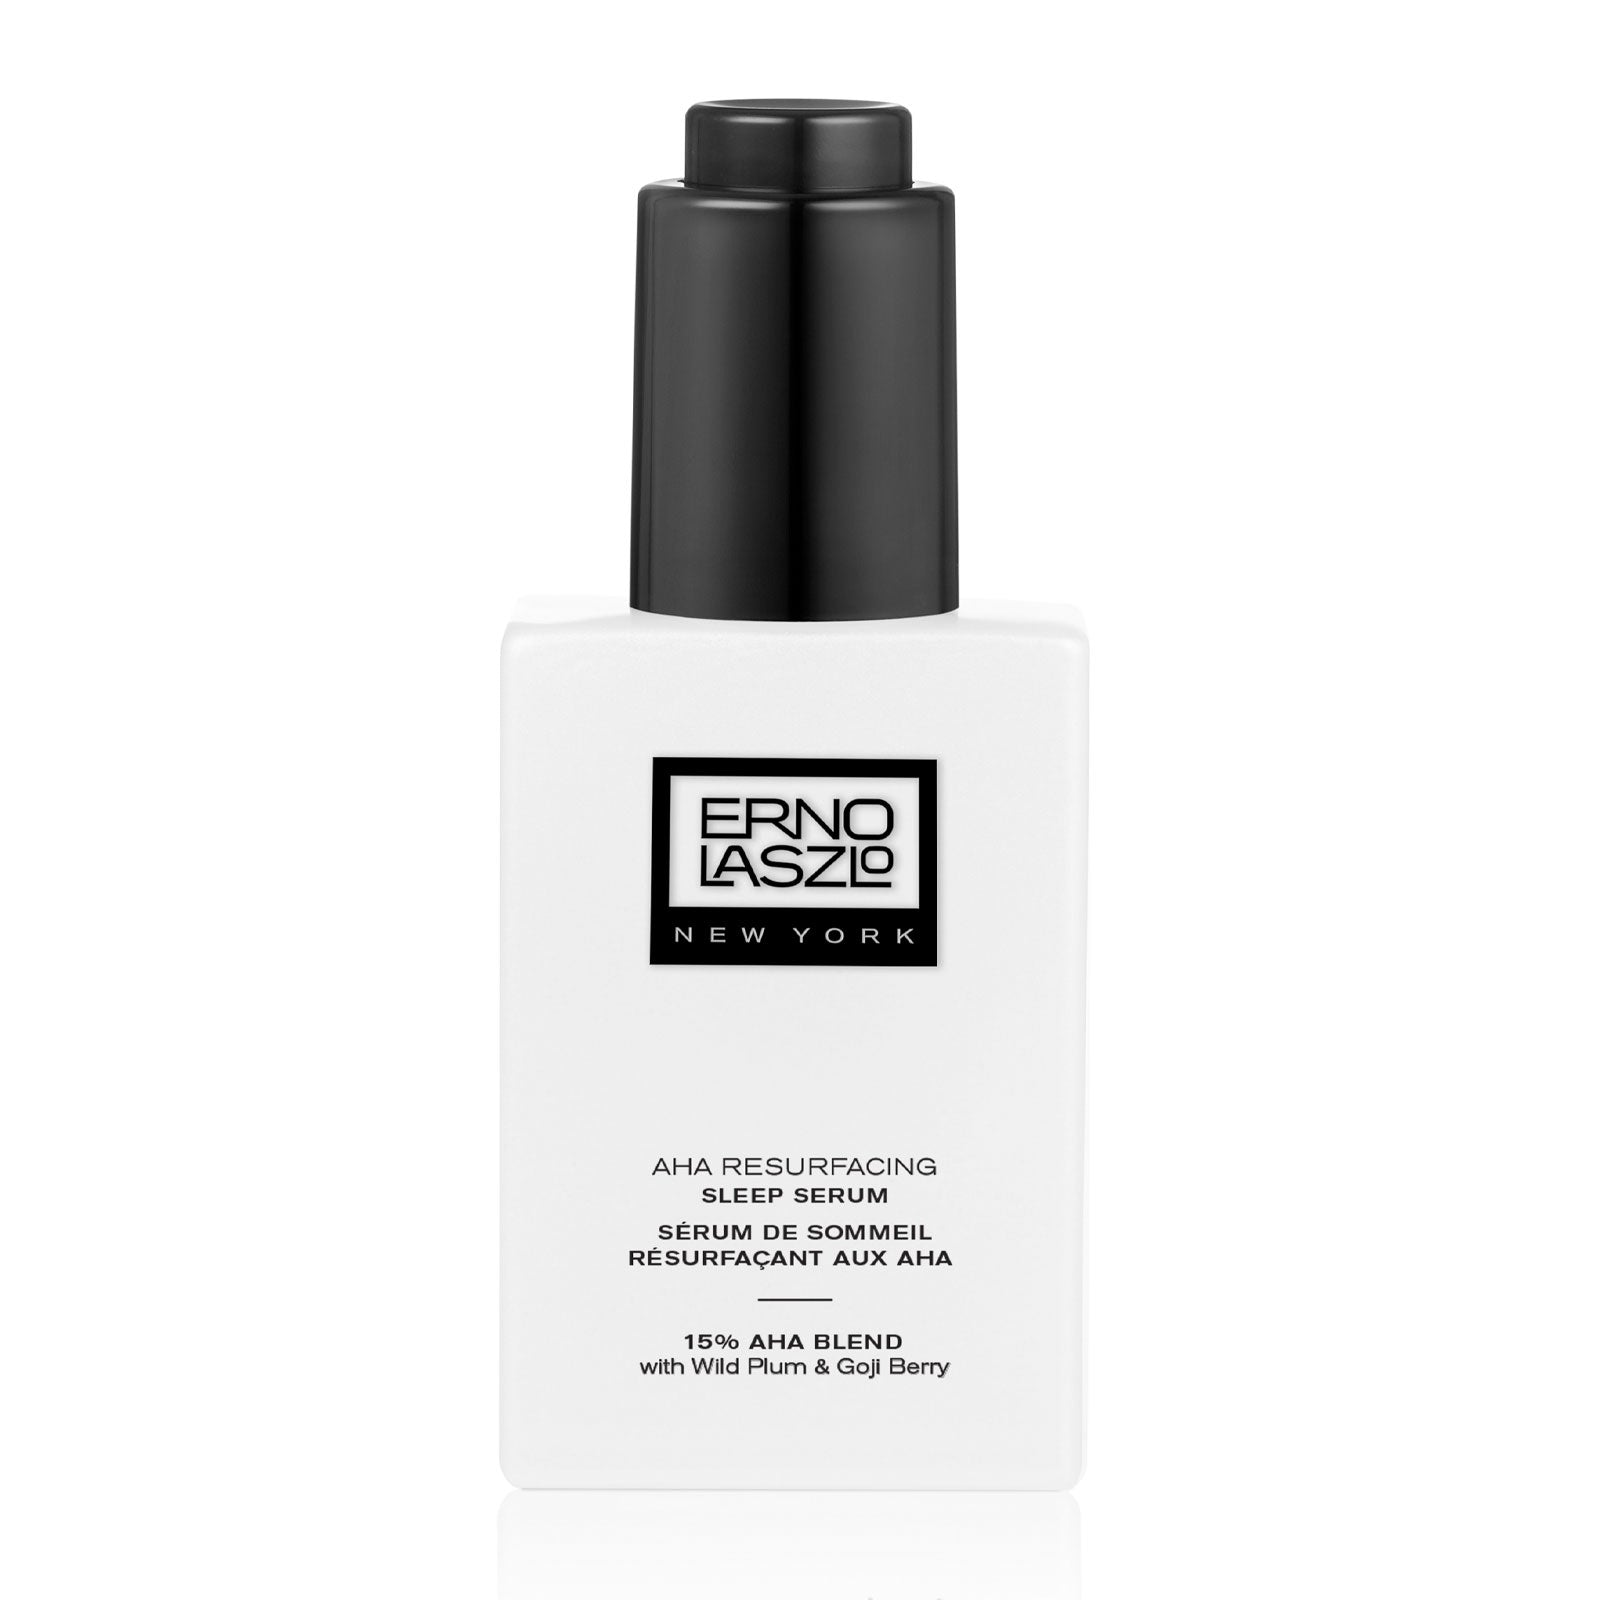 Erno Laszlo AHA Resurfacing Sleep Serum 30ml